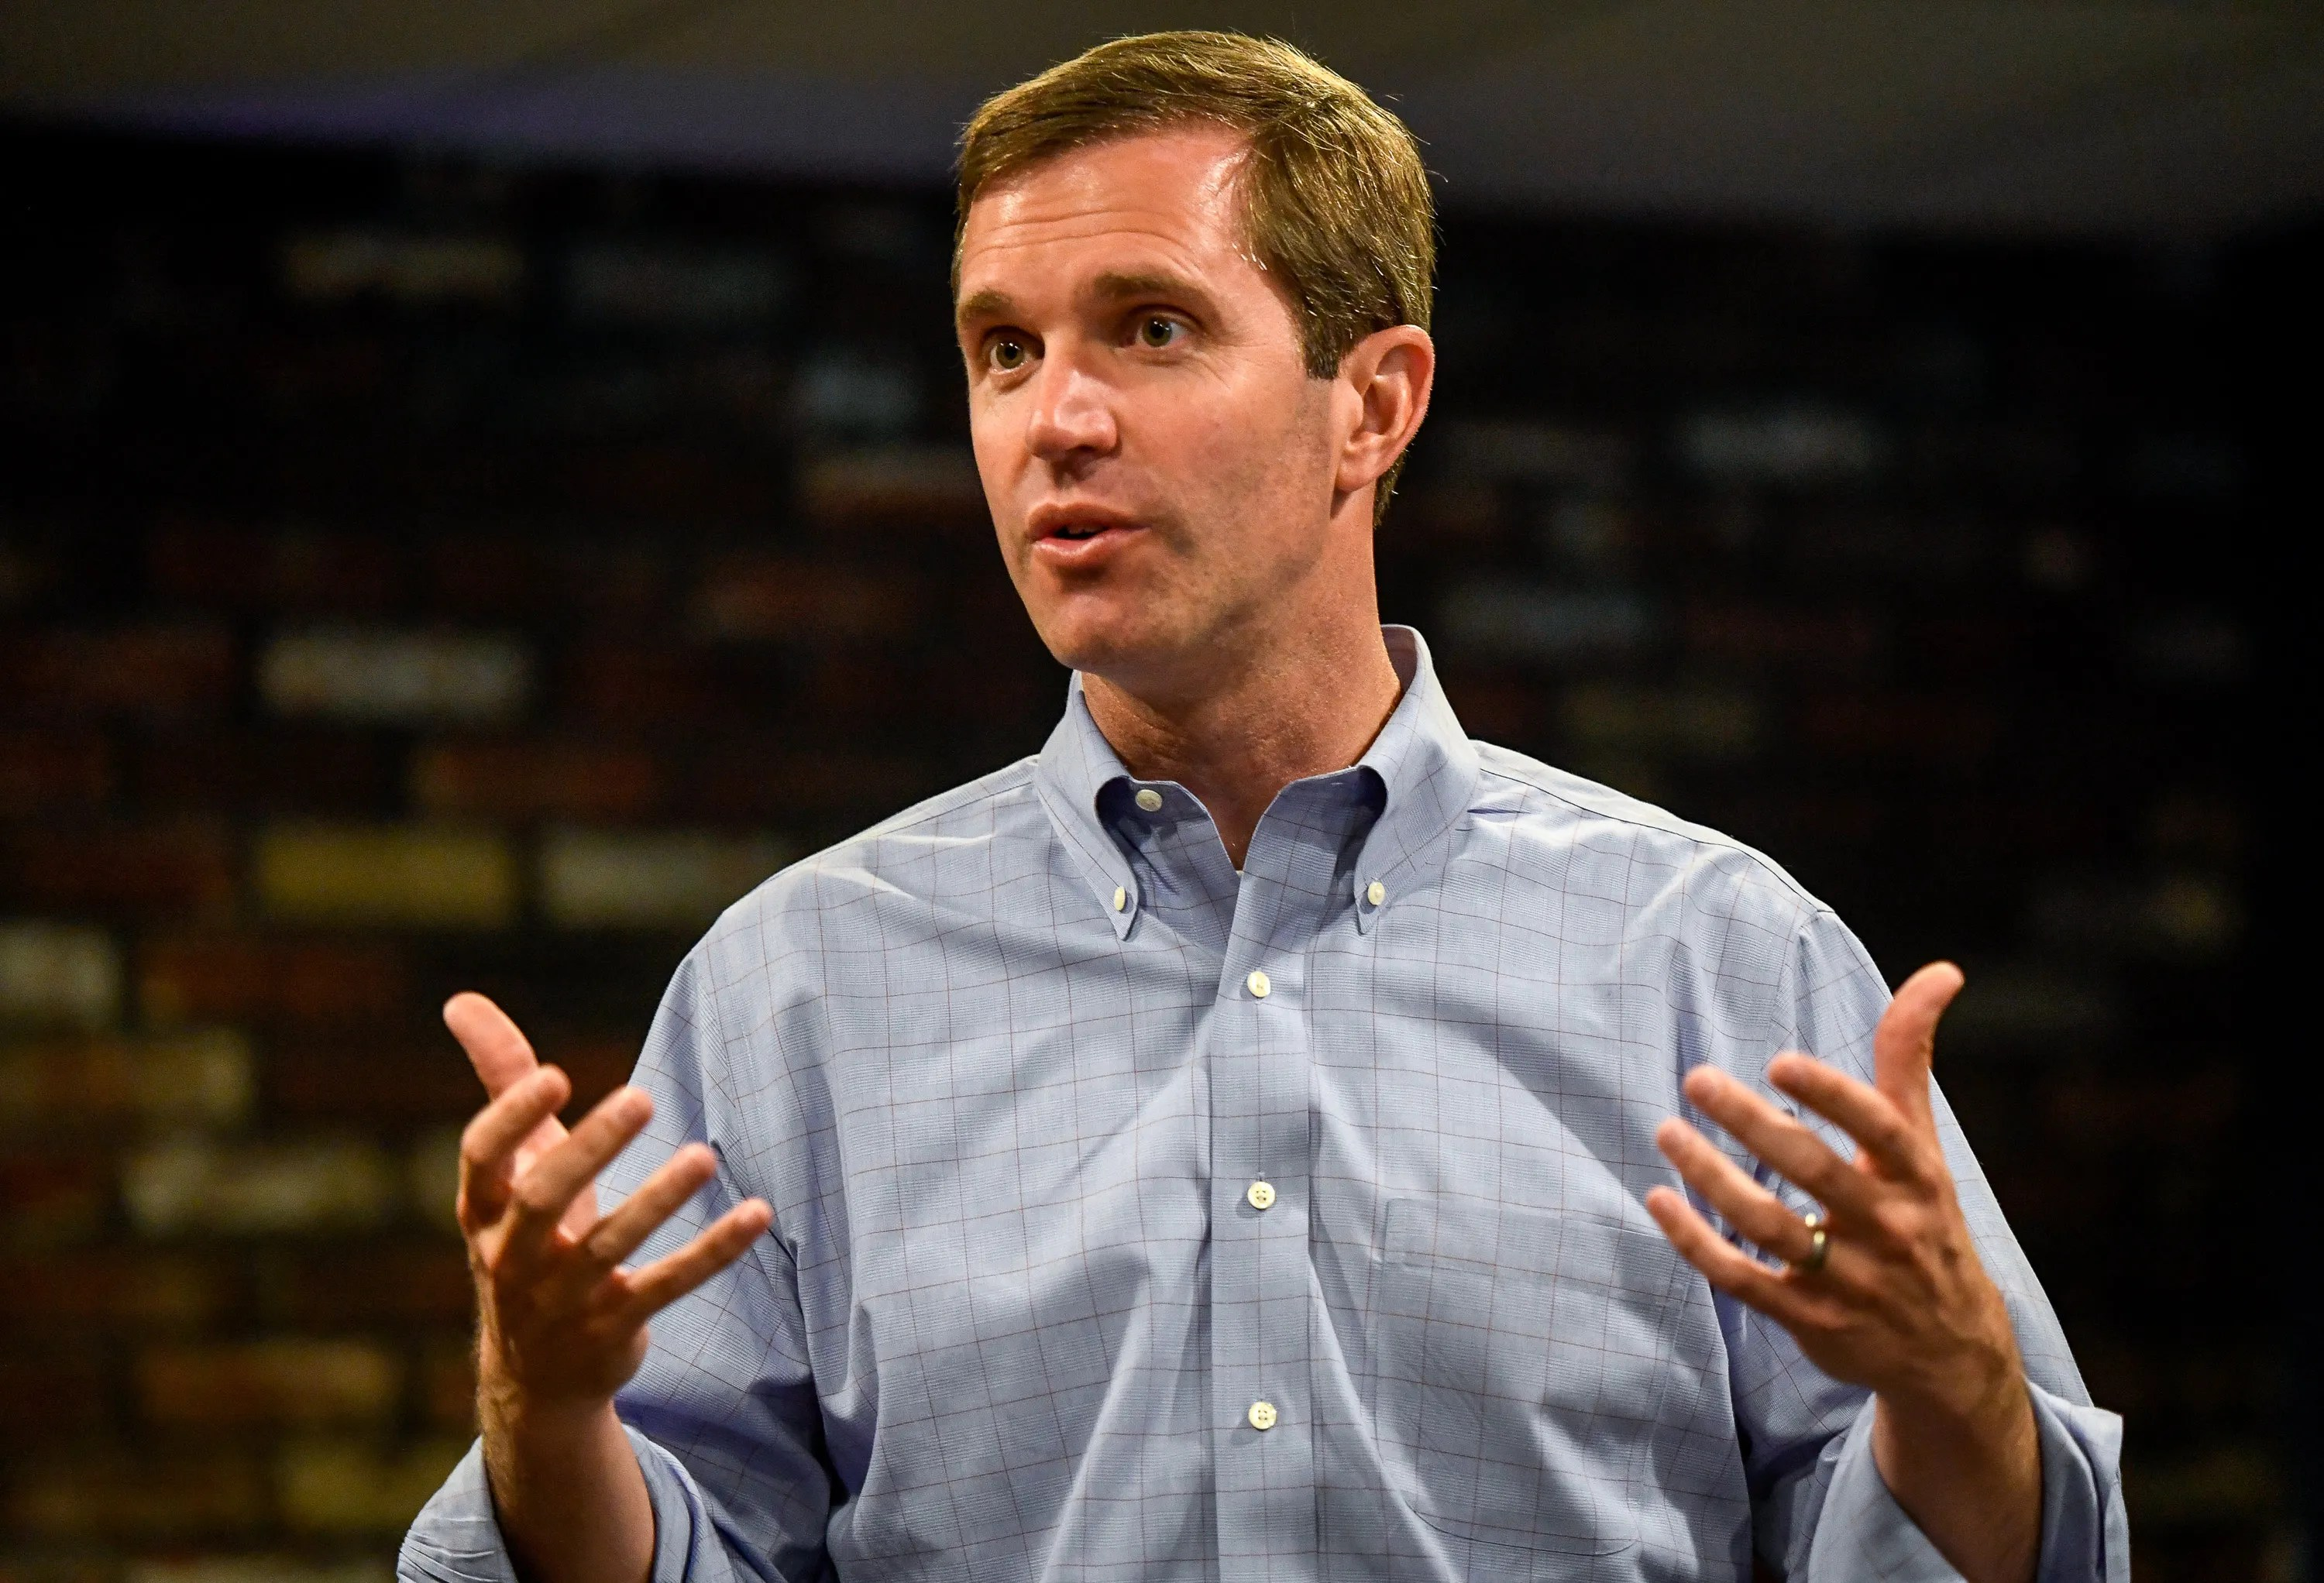 Kentucky Gubernatorial Candidate Andy Beshear Meets With